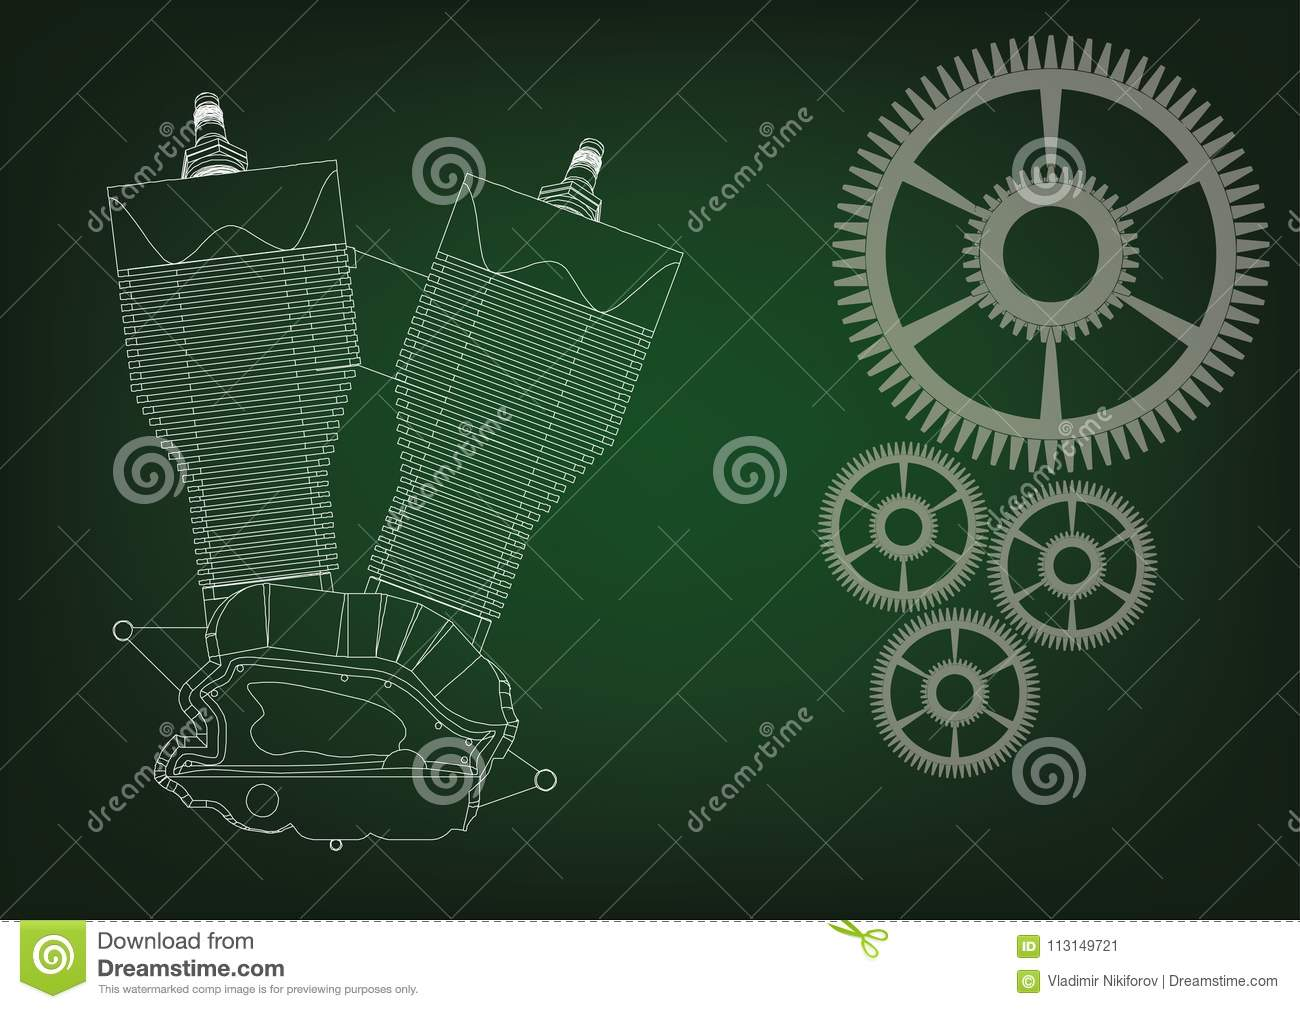 Motorcycle engine and cogwheels on a green background